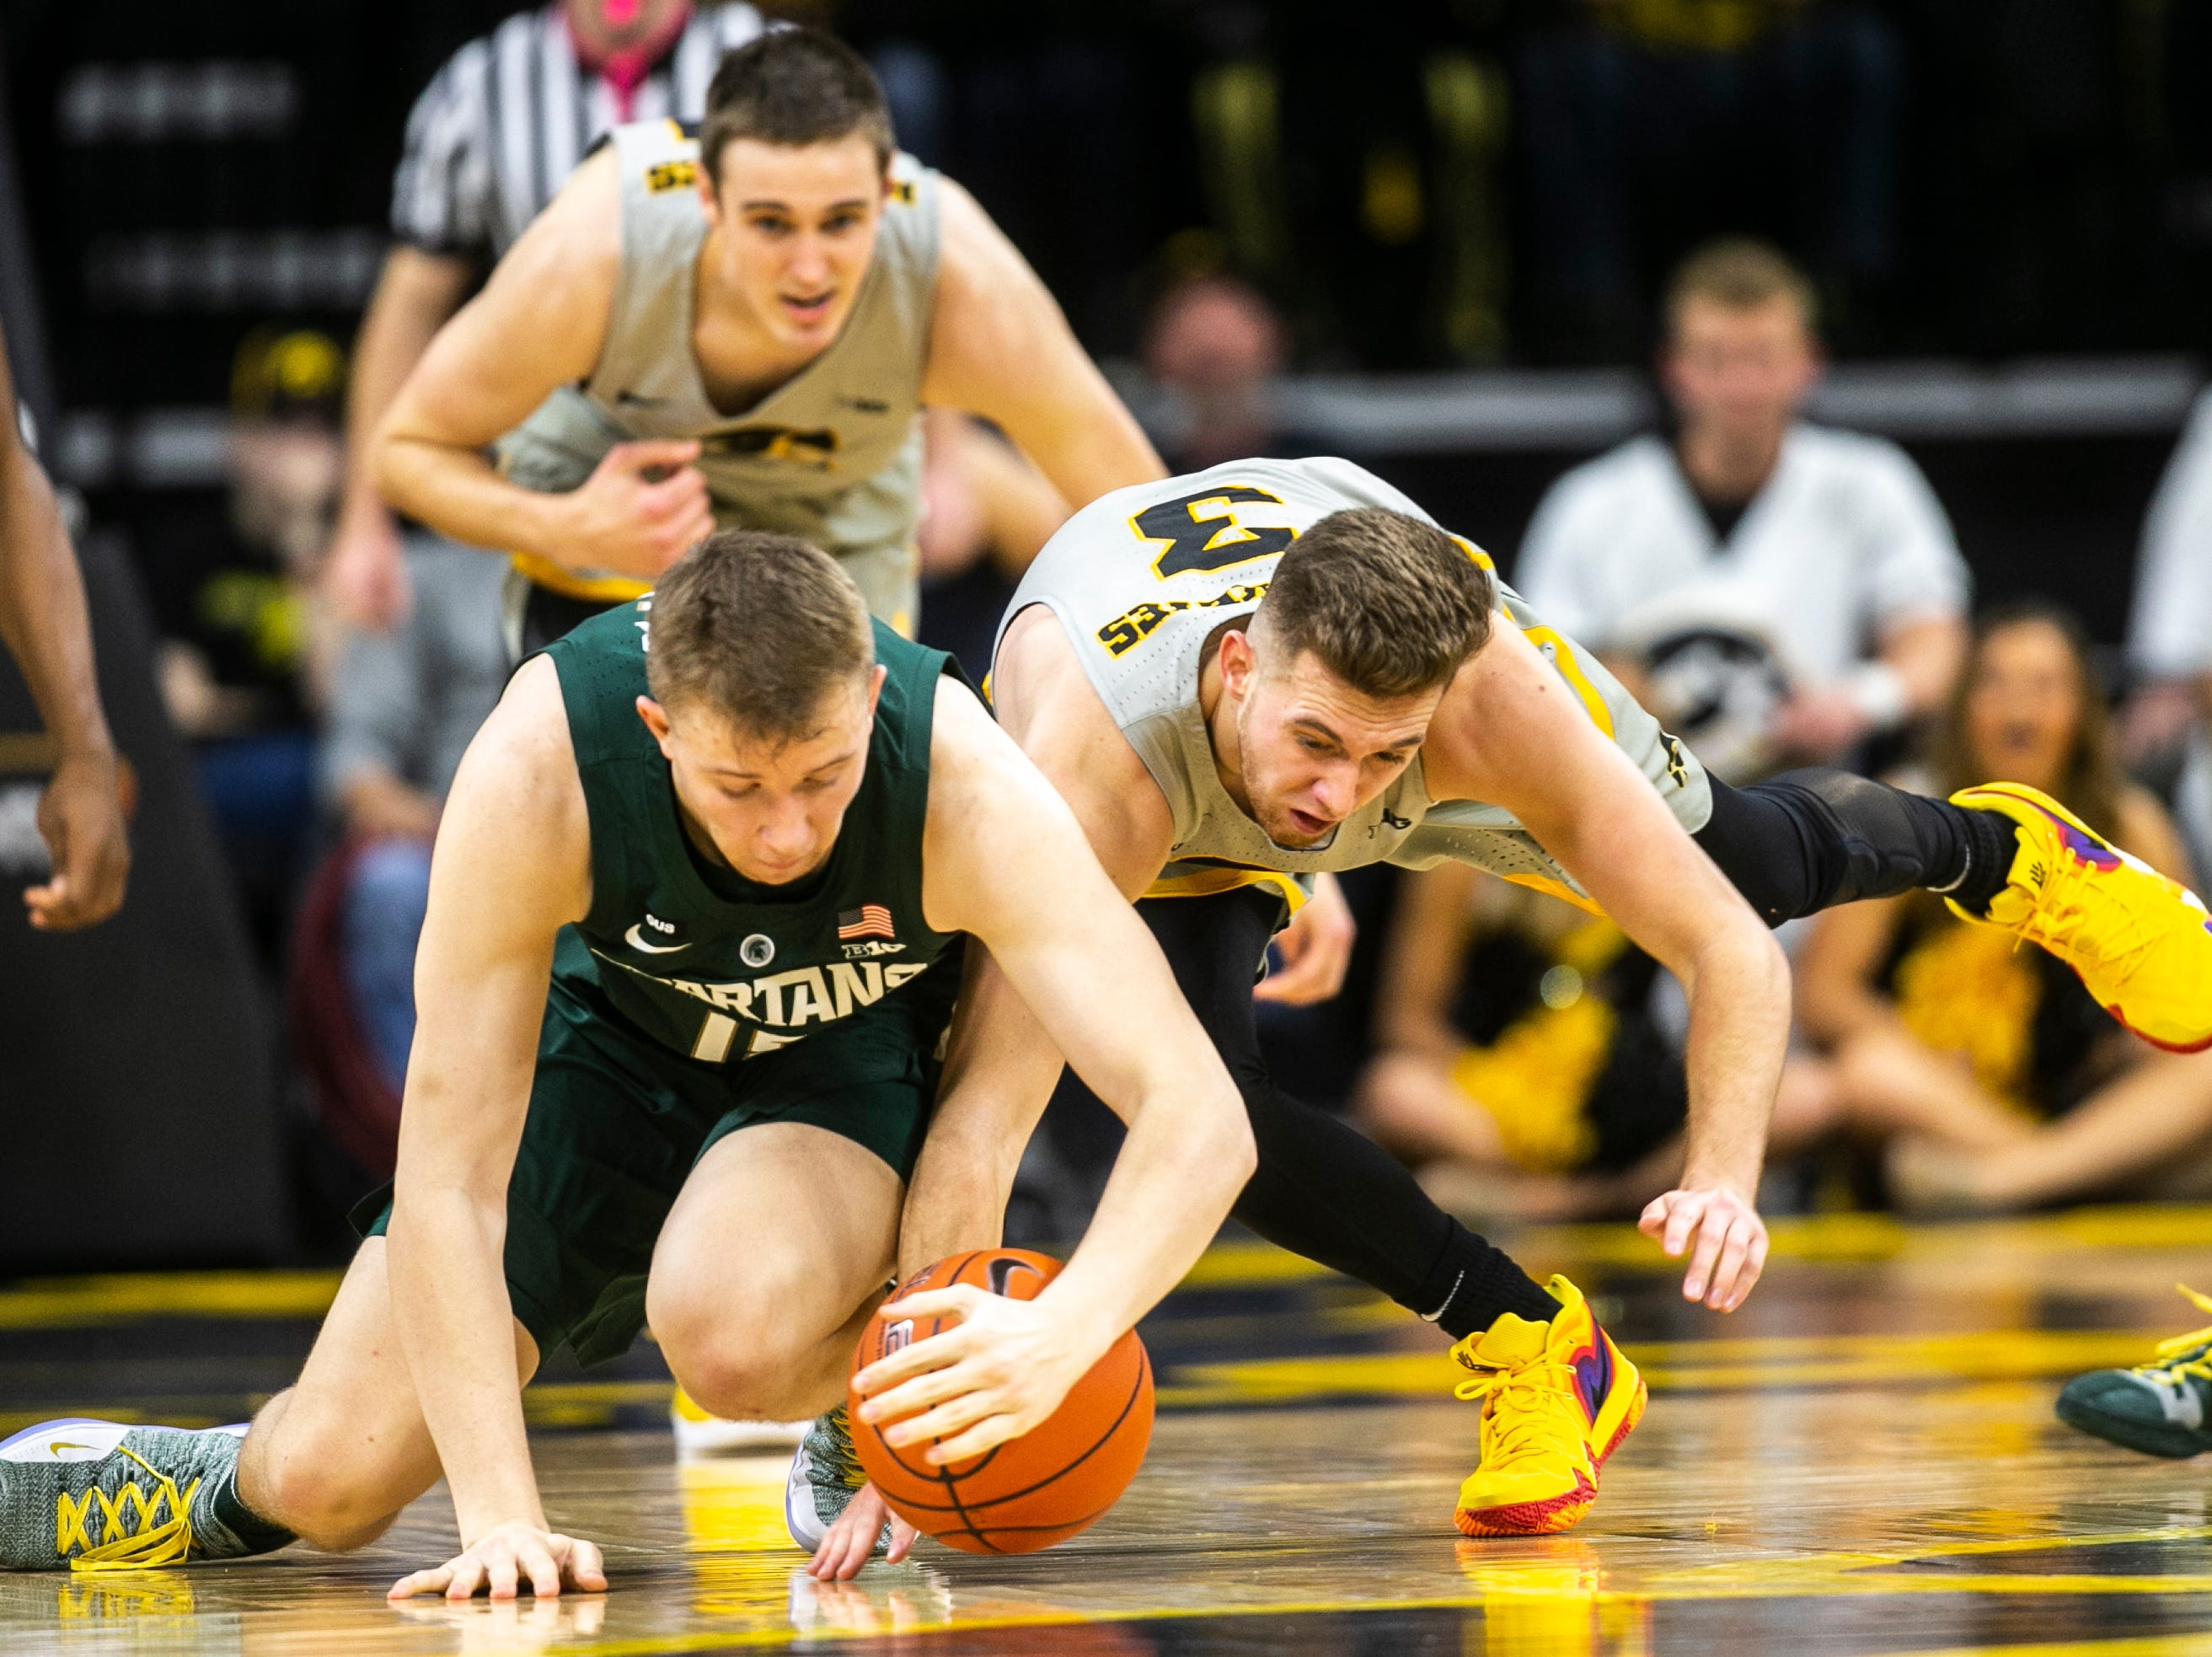 Iowa guard Jordan Bohannon (3) dives for a loose ball against Michigan State center Thomas Kithier (15) during a NCAA Big Ten Conference men's basketball game on Thursday, Jan. 24, 2019, at Carver-Hawkeye Arena in Iowa City, Iowa.